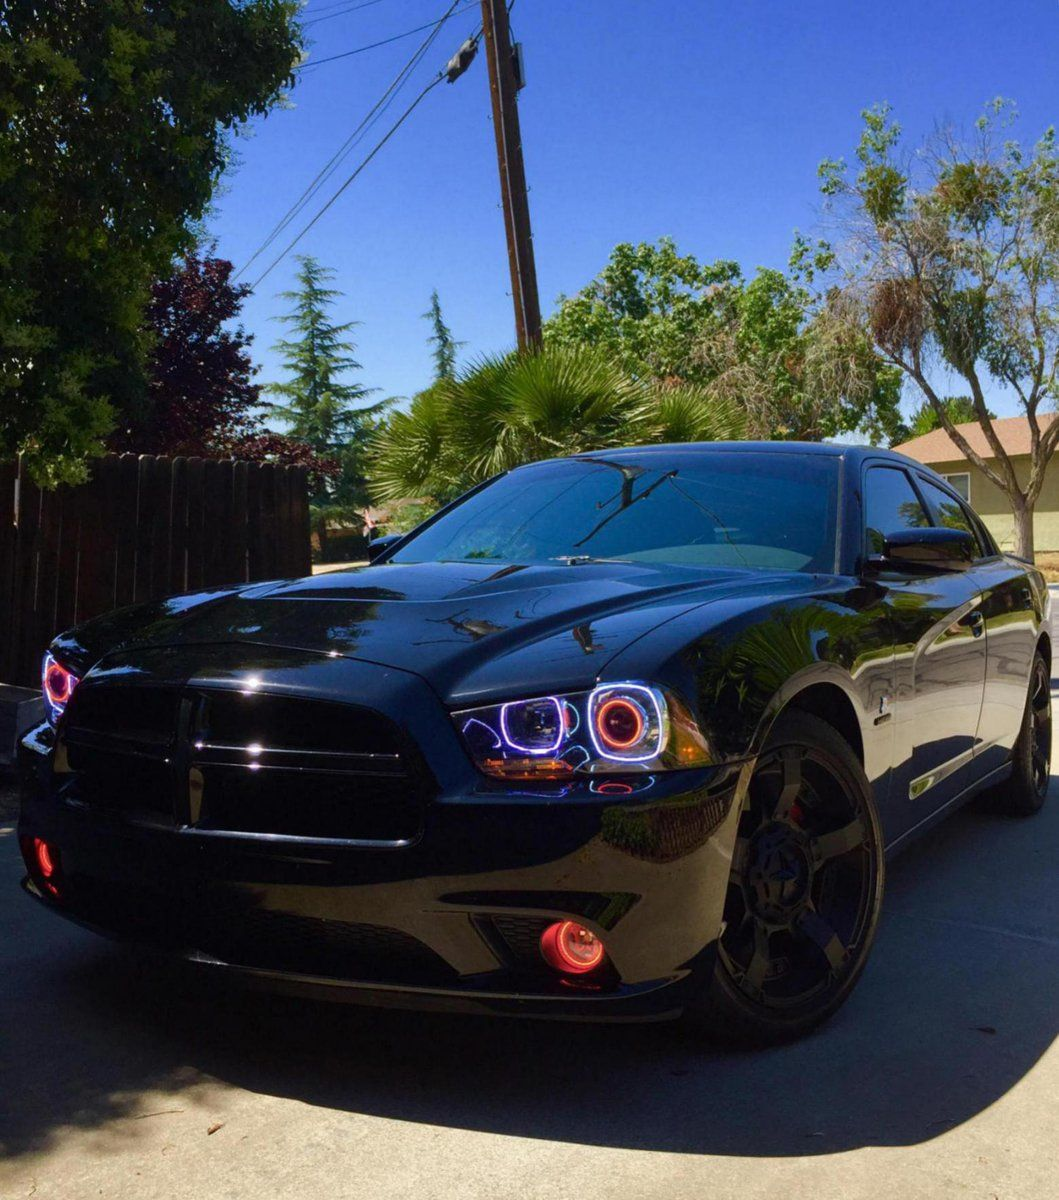 Rock on with this Dodge Charger R/T and Rockstar Rims